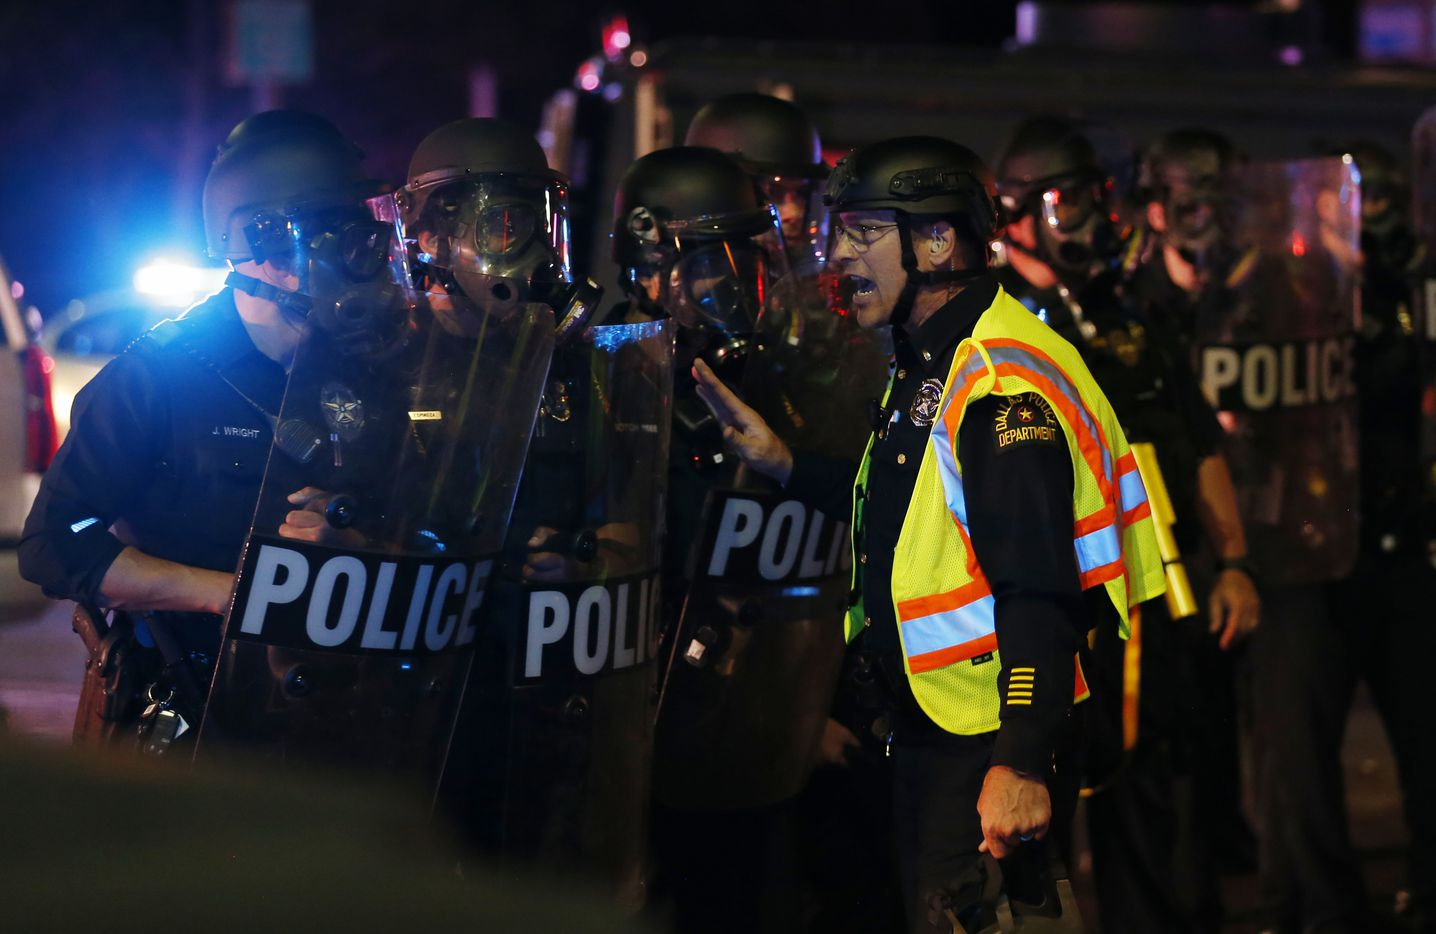 Dallas police work on controlling the protesters along the intersection of Young Street and Griffin in downtown Dallas, on Friday, May 29, 2020. George Floyd died in police custody in Minneapolis on May 25.